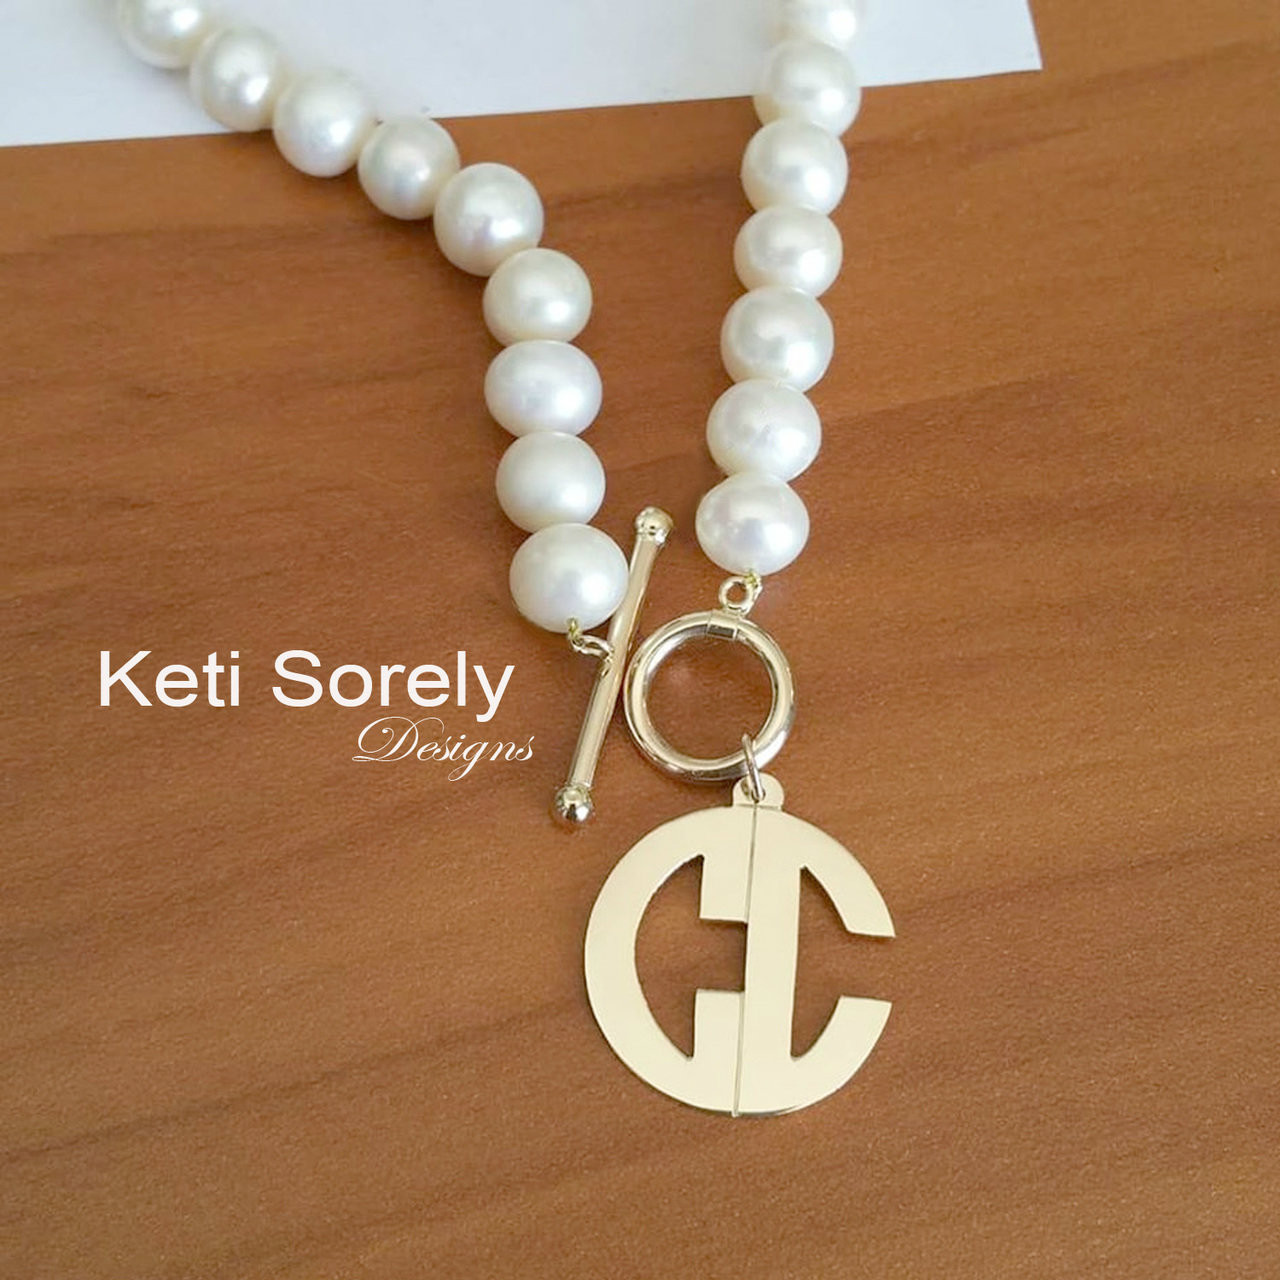 534c52d50 Handmade personalized Pearl Necklace with Modern Block Monogram ...